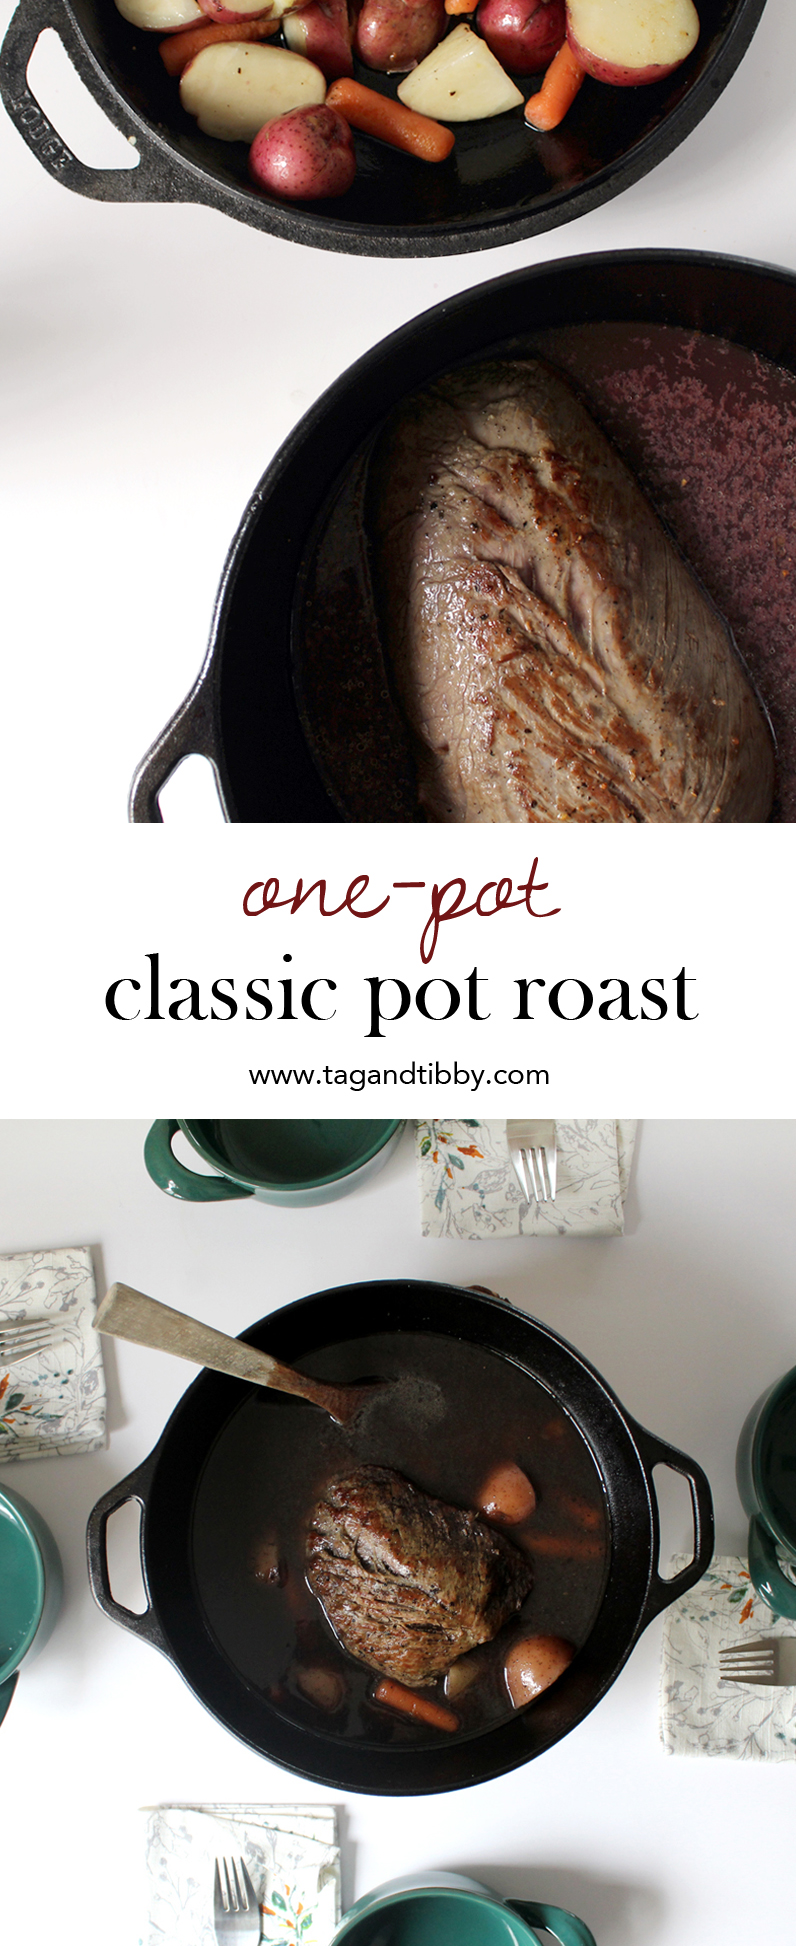 a classic one-pot pot roast recipe in 7 easy steps